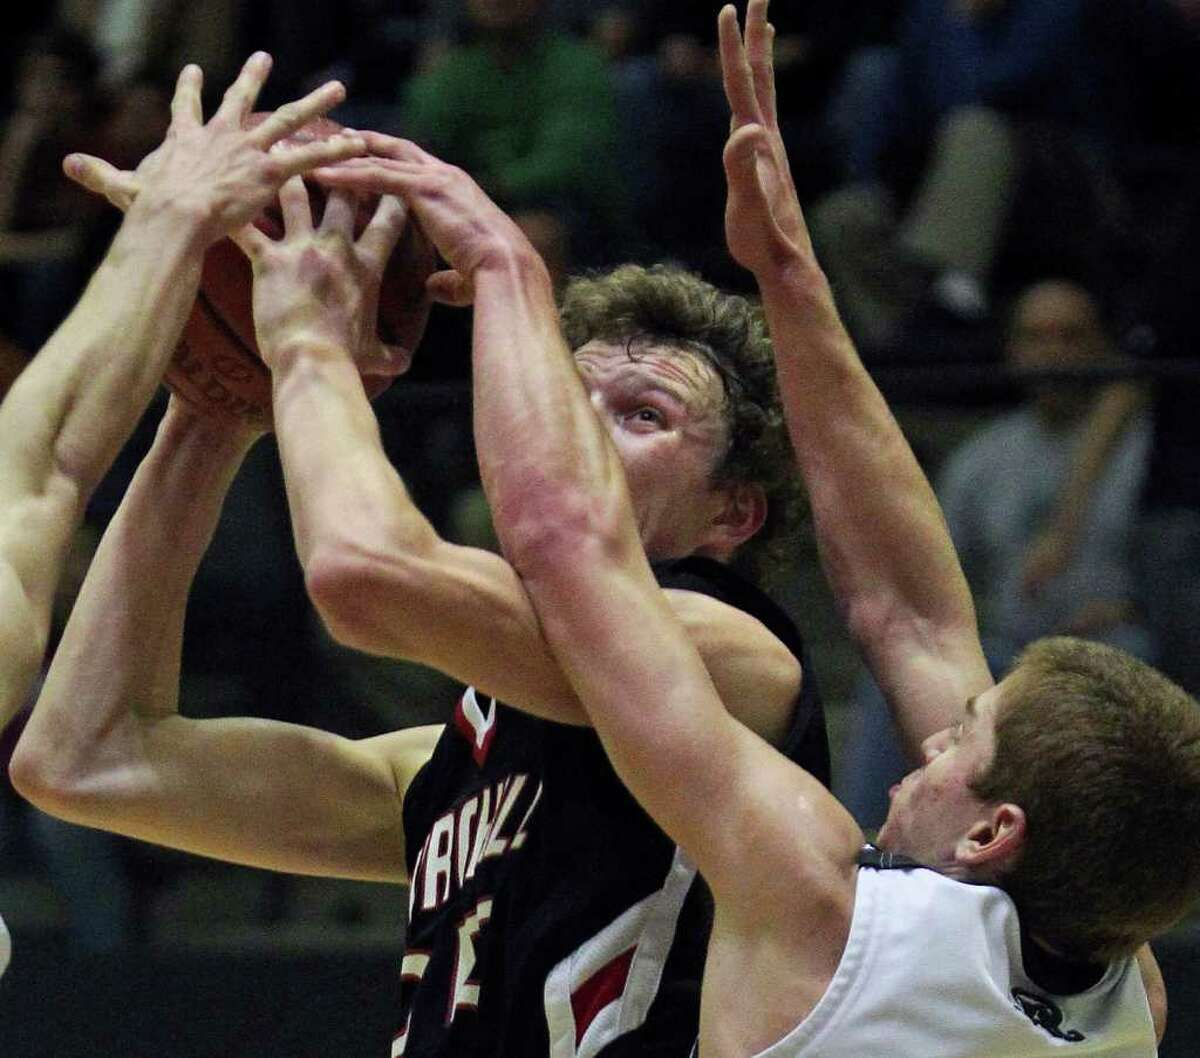 Chargers forward Clark Lammert goes up and draws a foul on Max Yon as the Reagan boys play Churchill at Littleton Gymnasium on Tuesday, Jan. 25, 2011. Churchill won 96-84.